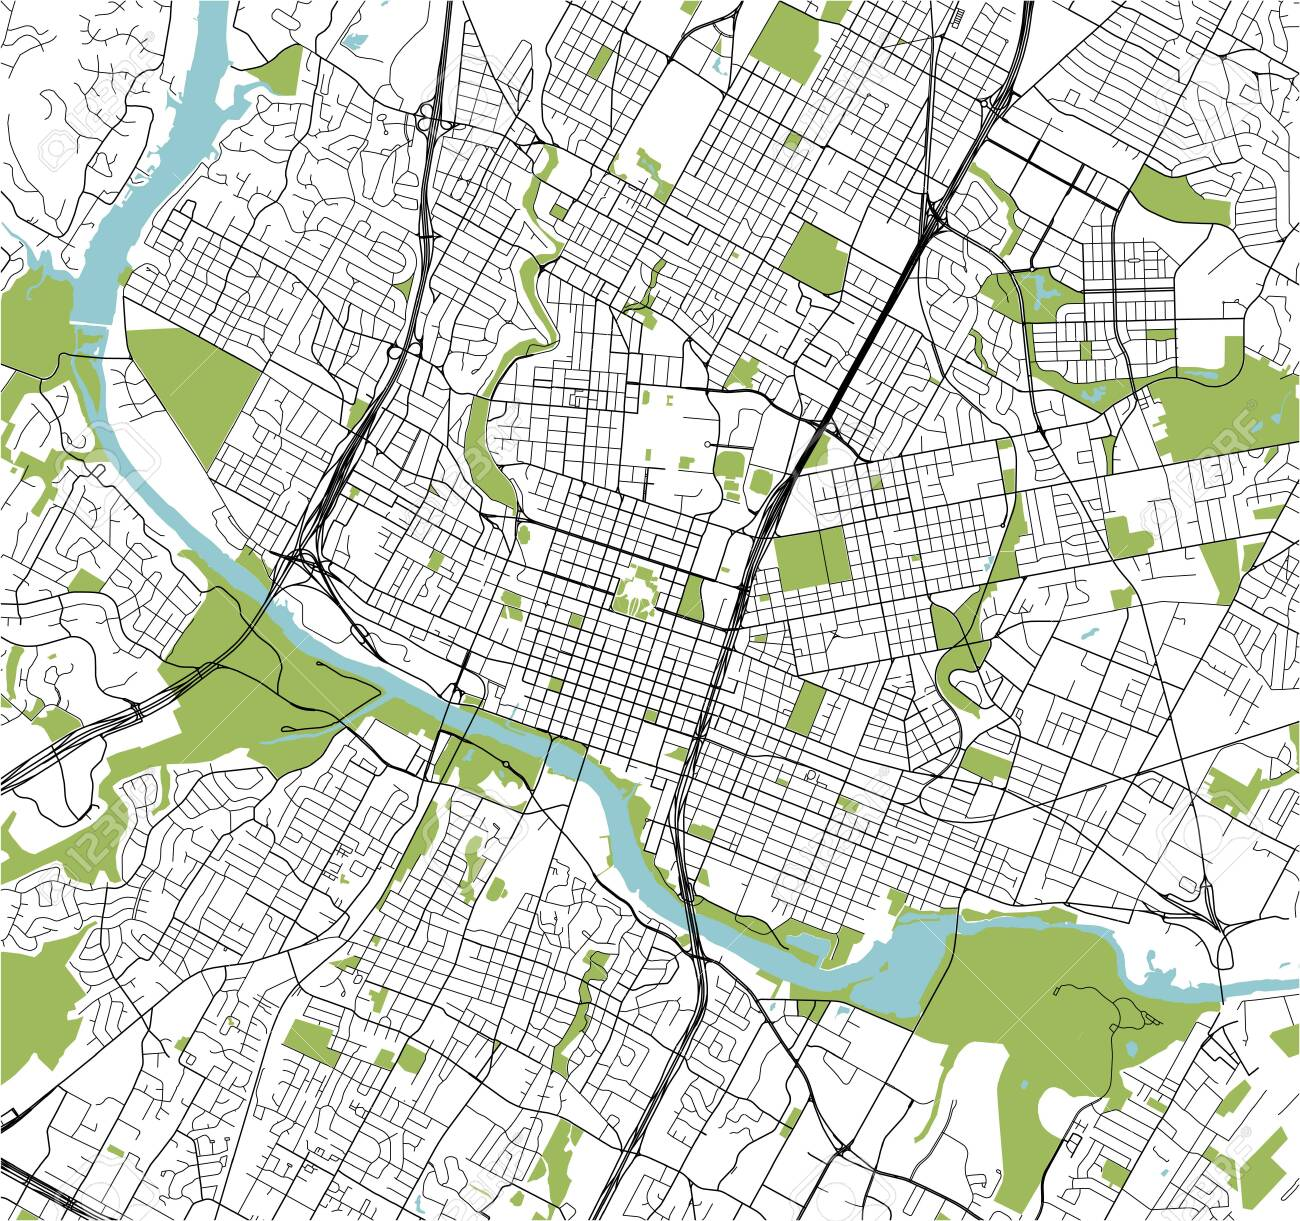 map of the city of Austin, Texas, USA City Map Of Austin Tx on city of ada ok map, city of bowling green ky map, city of santa fe nm map, city of harahan la map, city of los angeles ca map, city of stuart fl map, city of concord nc map, city of grand forks nd map, city of long beach ca map, city of manchester nh map, city of bismarck nd map, city of green bay wi map, city of caldwell id map, city of apache junction az map, city of ann arbor mi map, city of darien ct map, city of battle creek mi map, city of dubois pa map, city street maps austin texas, city of sault ste marie mi map,